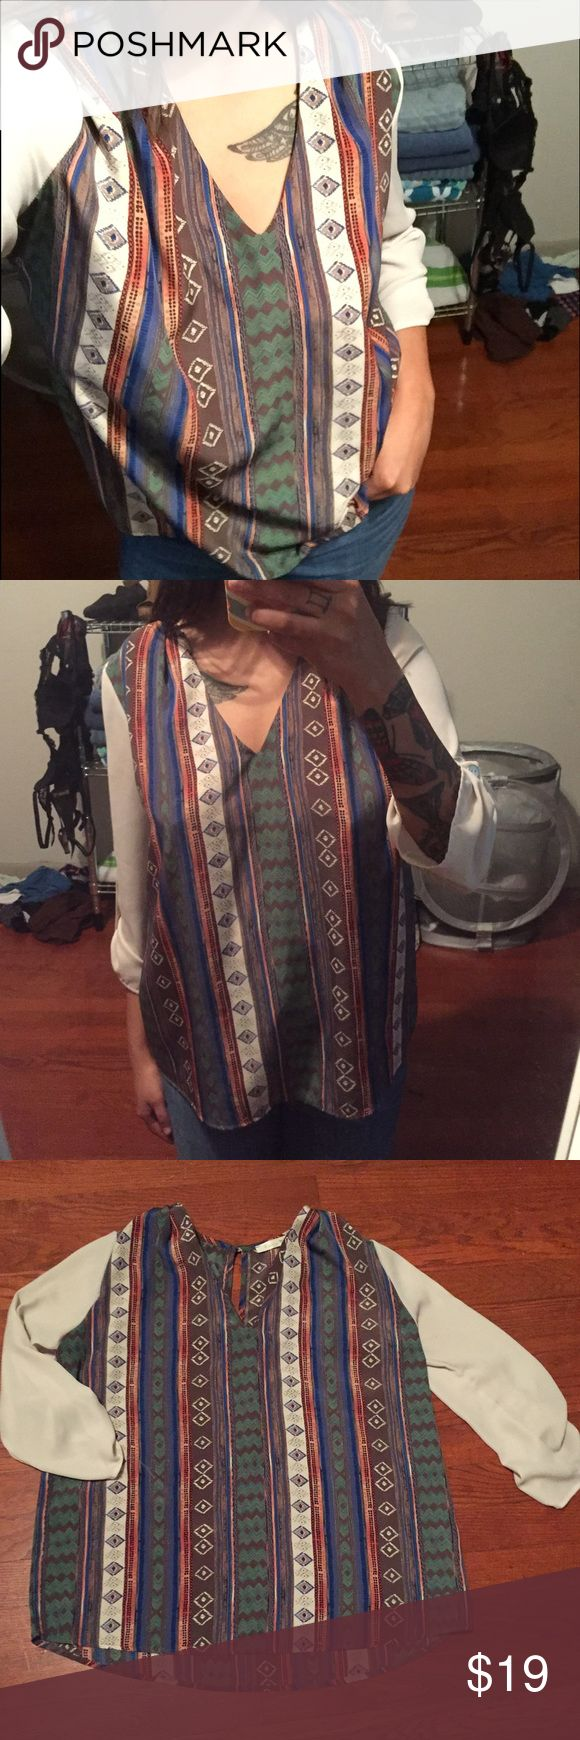 Aztec Top Pictures do not do this top justice. The colors are beautiful in person, it's very comfortable and silky soft. In great condition, bought this top at a flea market here in Austin, I just don't wear it anymore. Tops